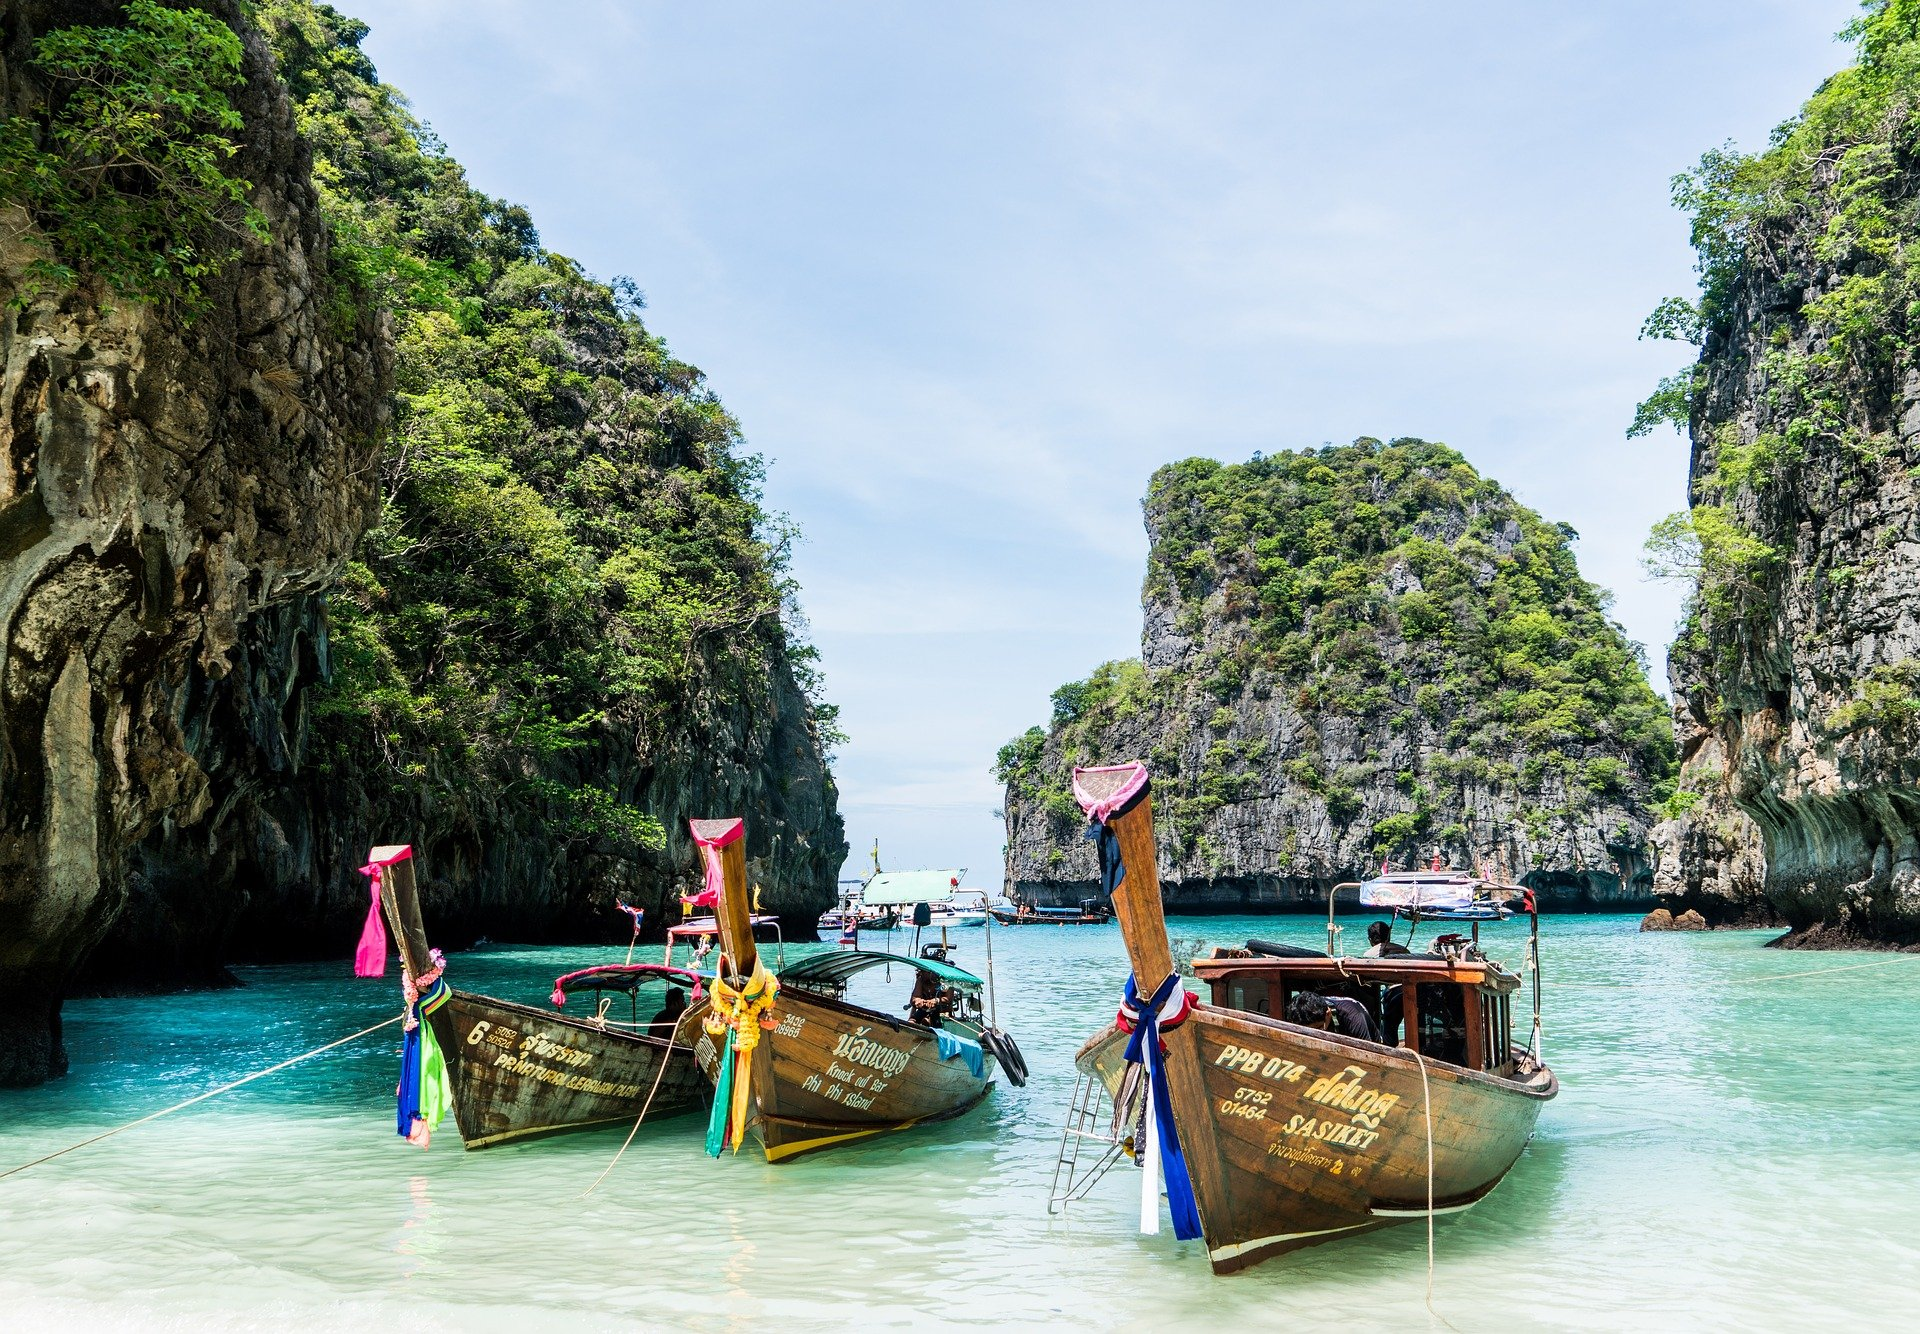 These Are the Top 10 Travel Destinations in the World According to Go Tour Travelers